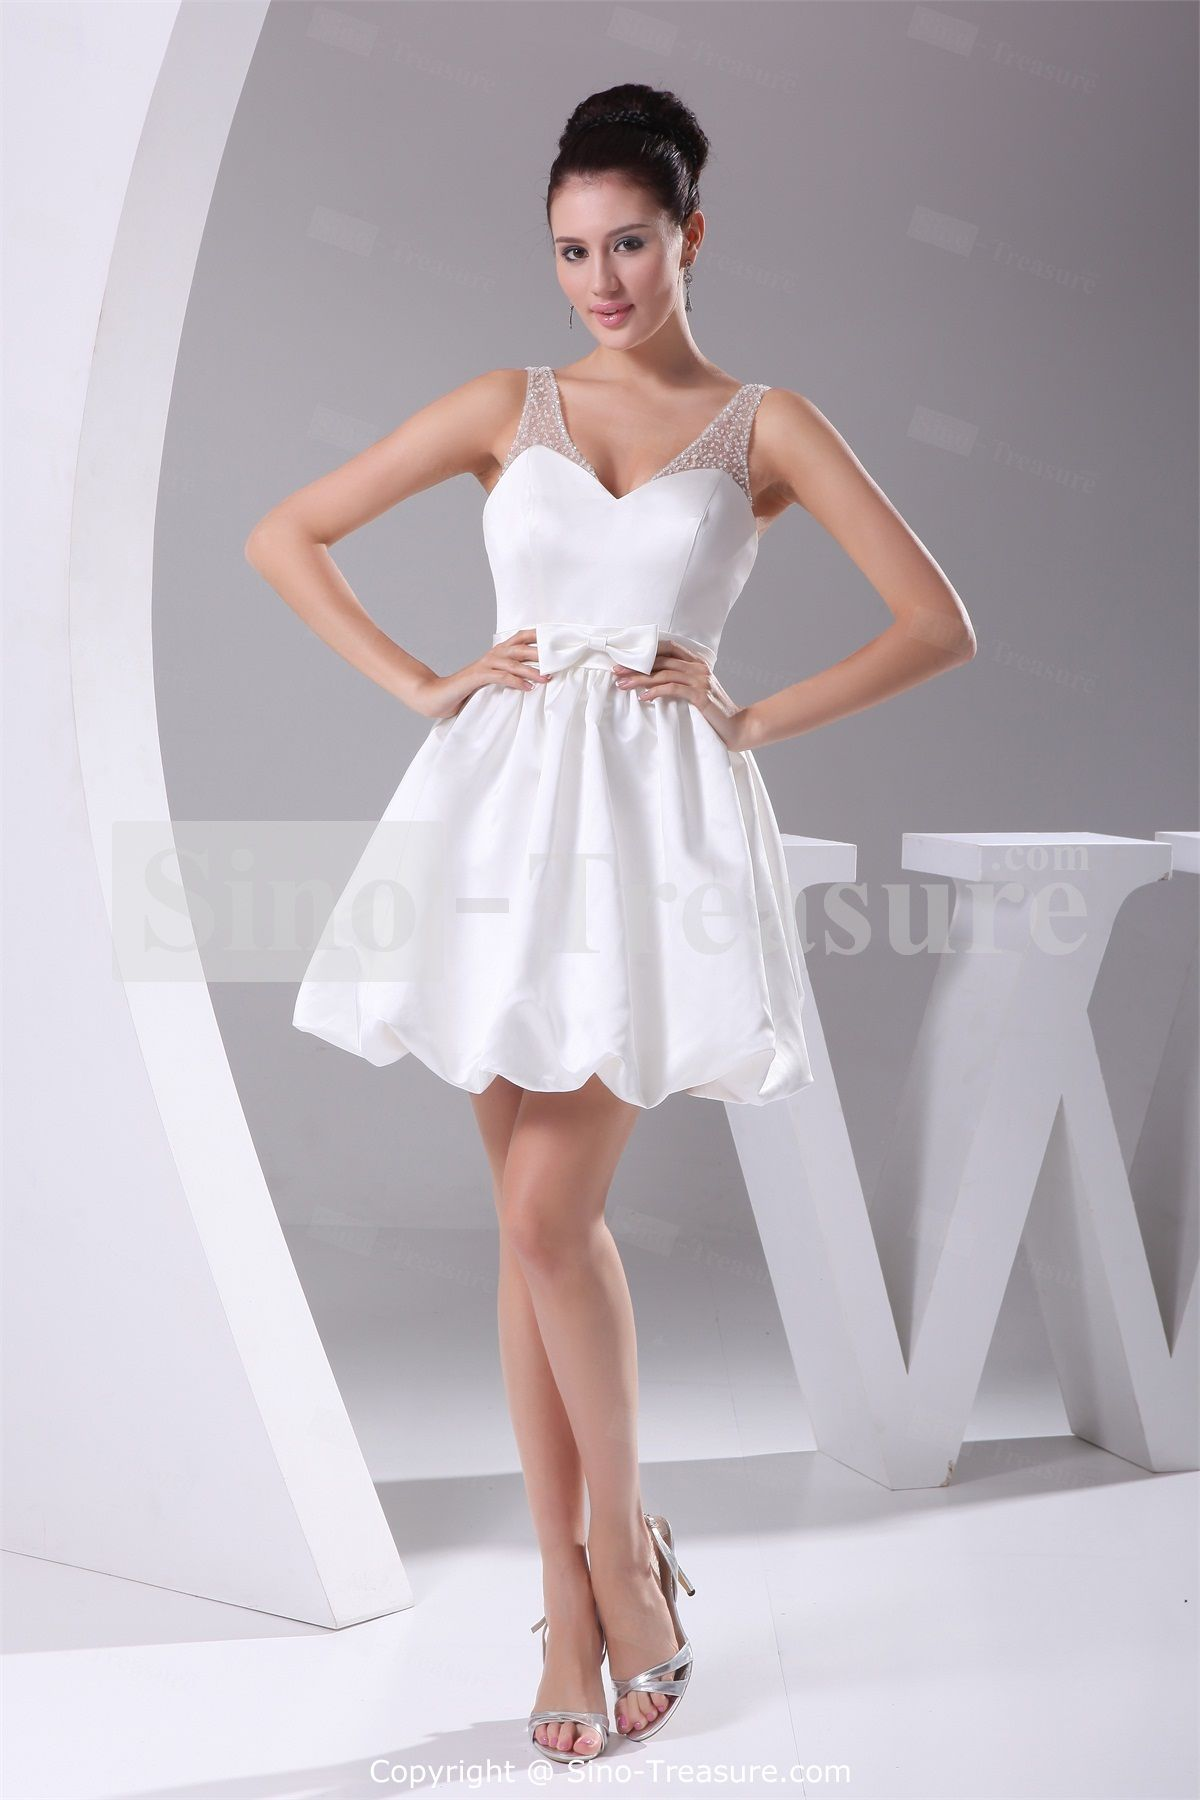 Mini Short Satinfine Netting Backless Sleeveless Beach Wedding